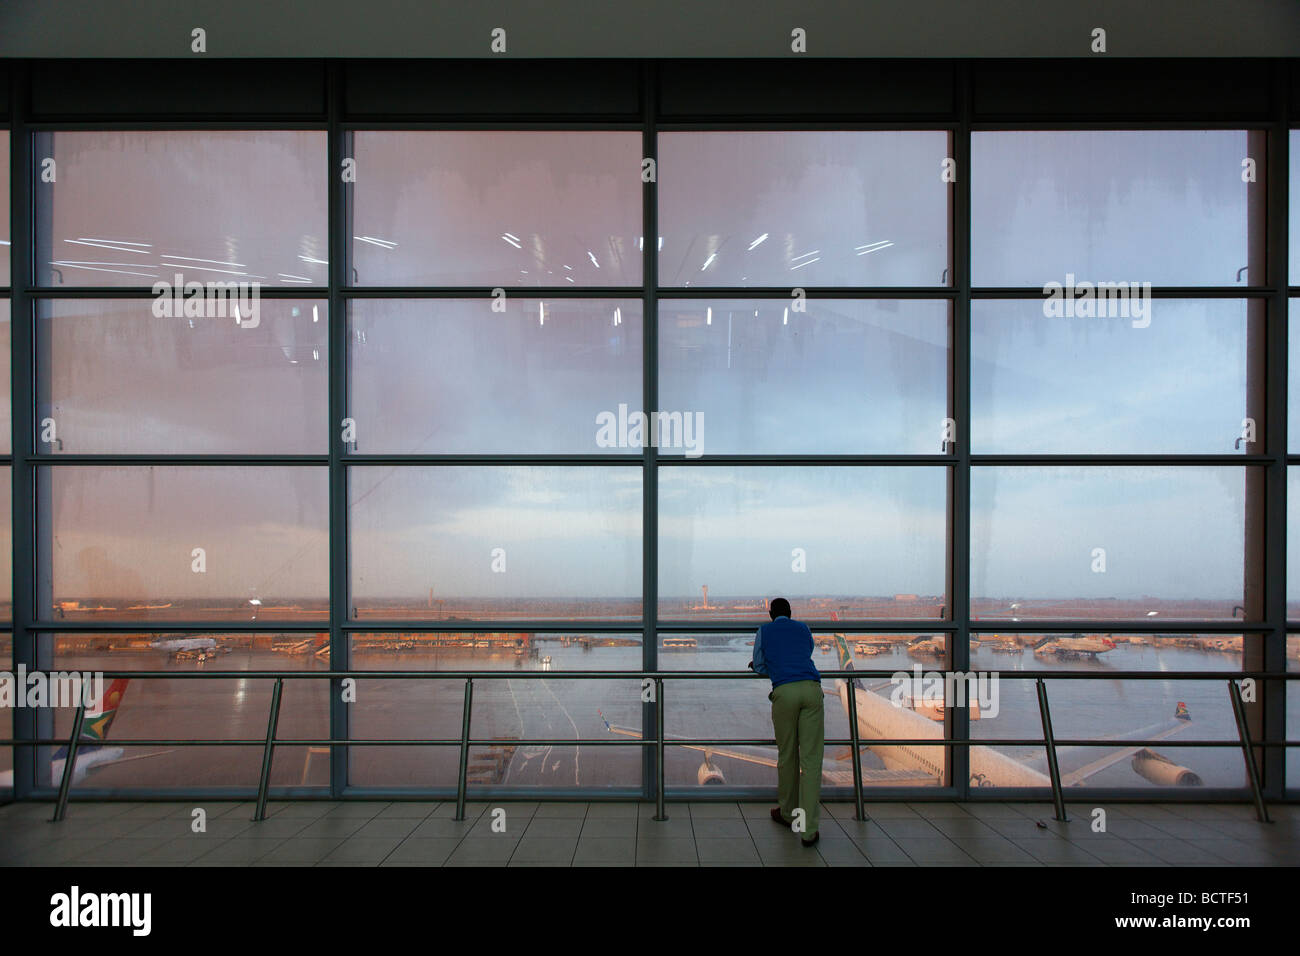 Observation deck, airfield, aeroplane, O R Tambo International Airport, Johannesburg, South Africa, Africa - Stock Image